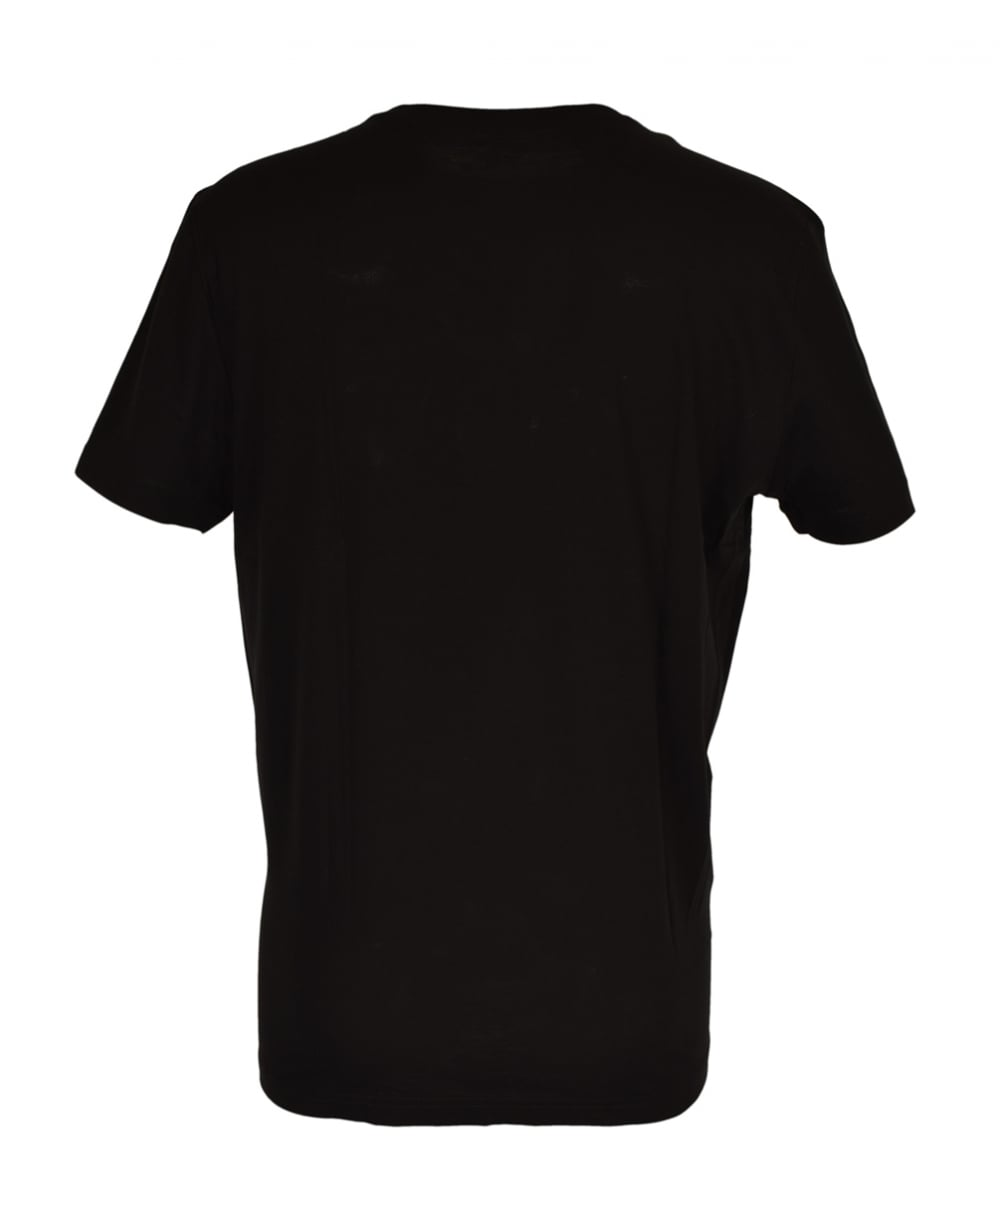 Lacoste Black Crew Neck Th5275 T Shirt Lacoste From